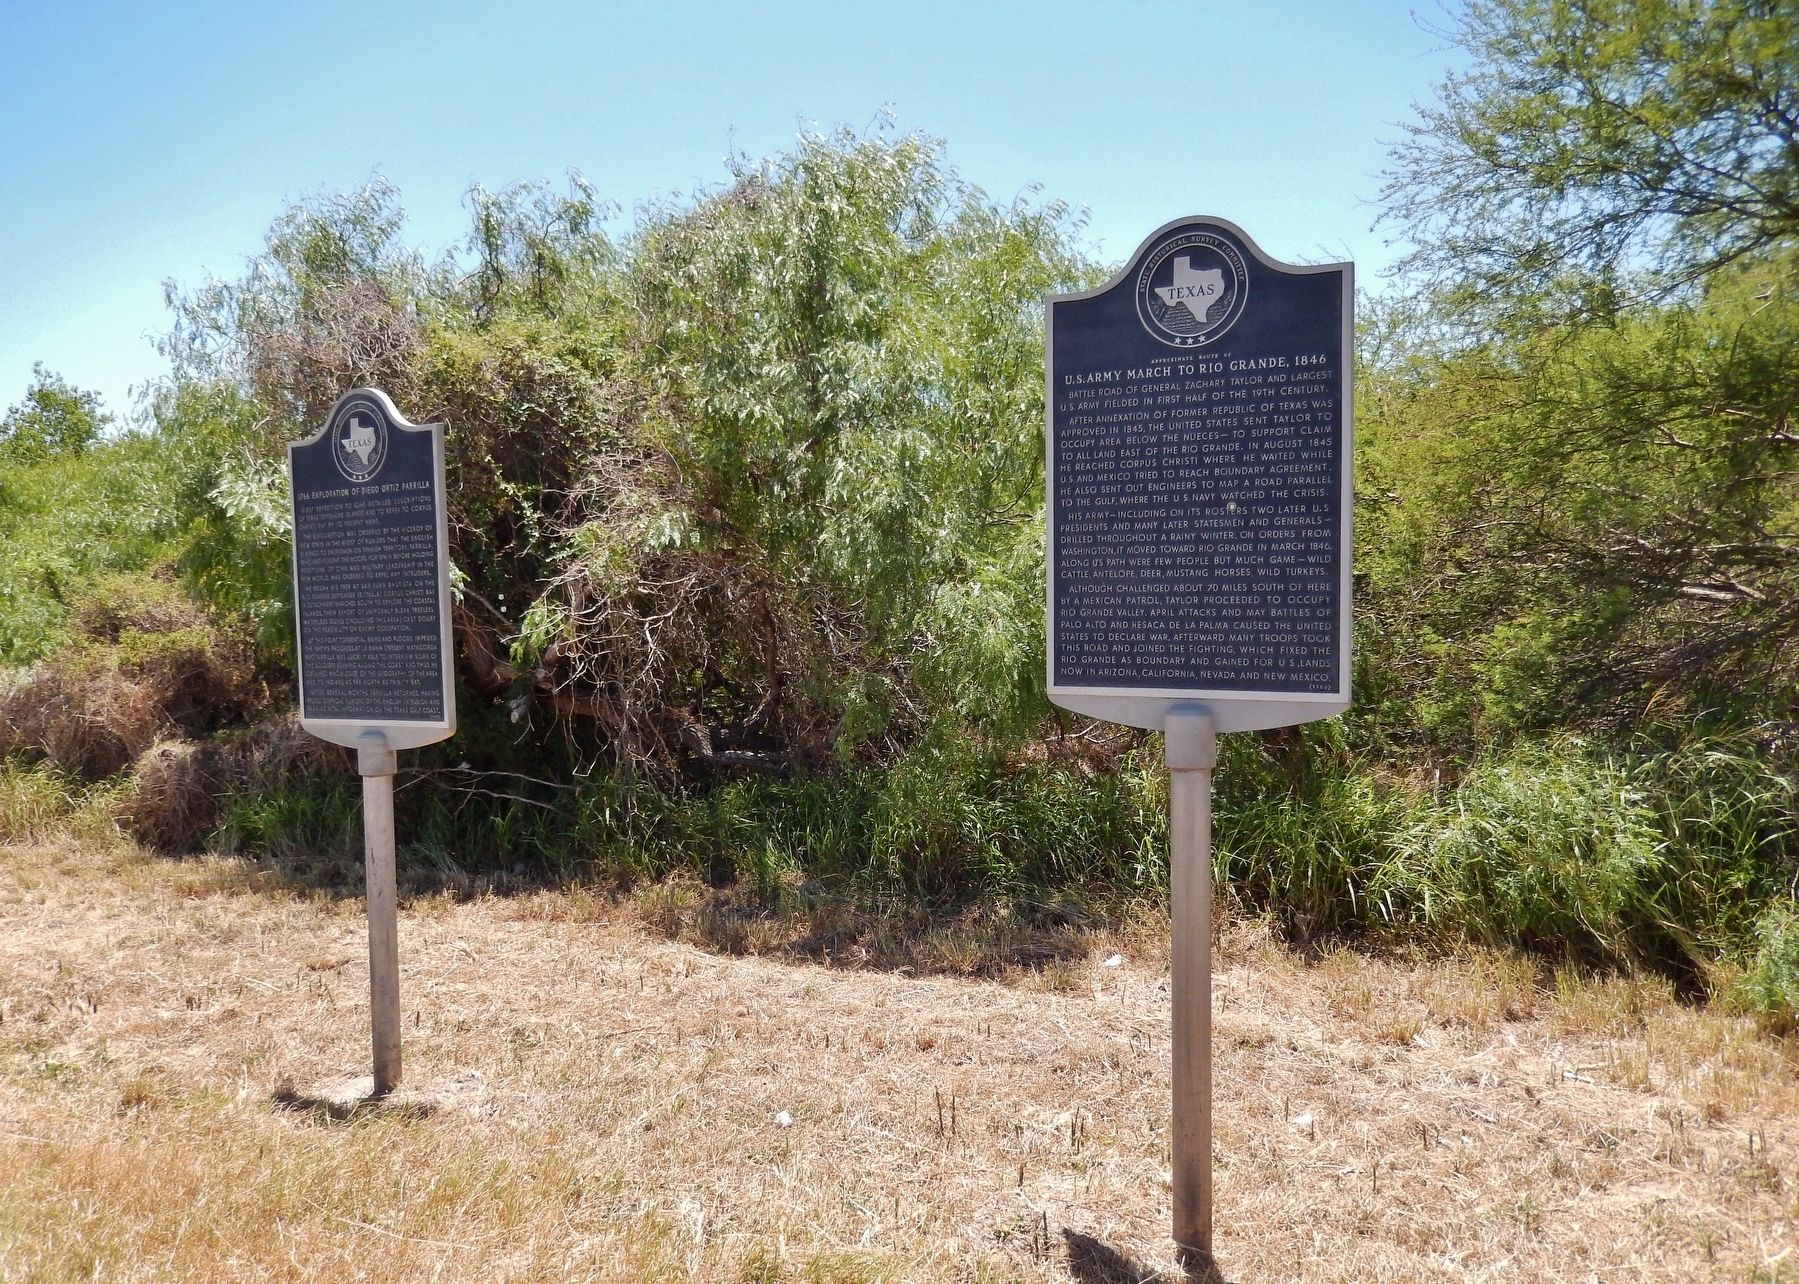 U.S. Army March to Rio Grande, 1846 Marker (<i>wide view; unrelated marker at left</i>) image. Click for full size.